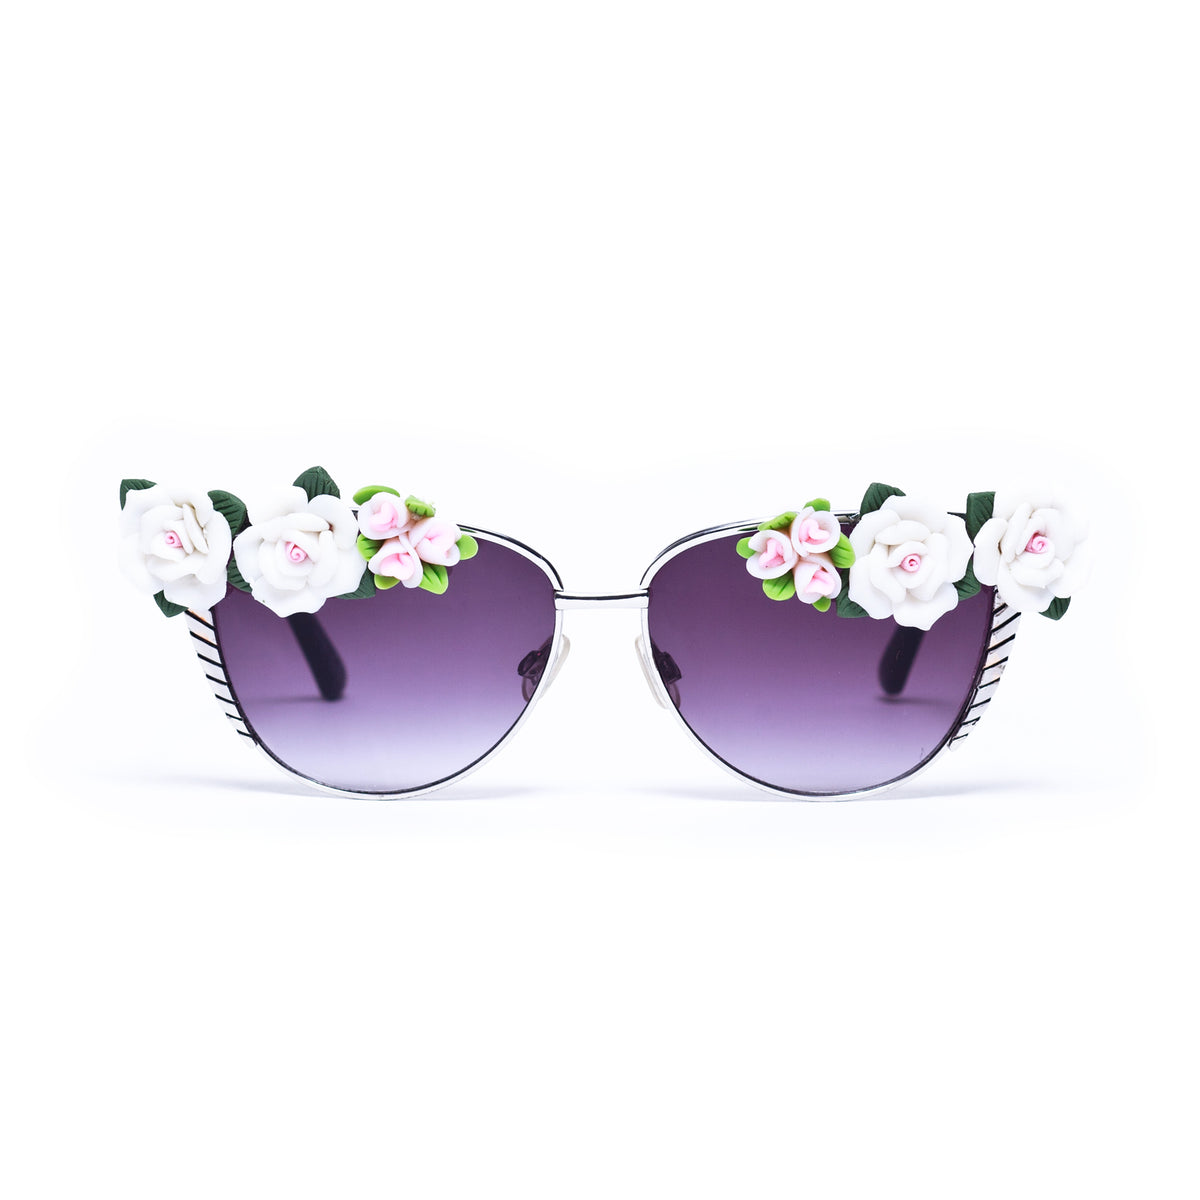 Garden Princesa  SUNNIES + OPTICS TNEMNRODAsamplesale- NRODA